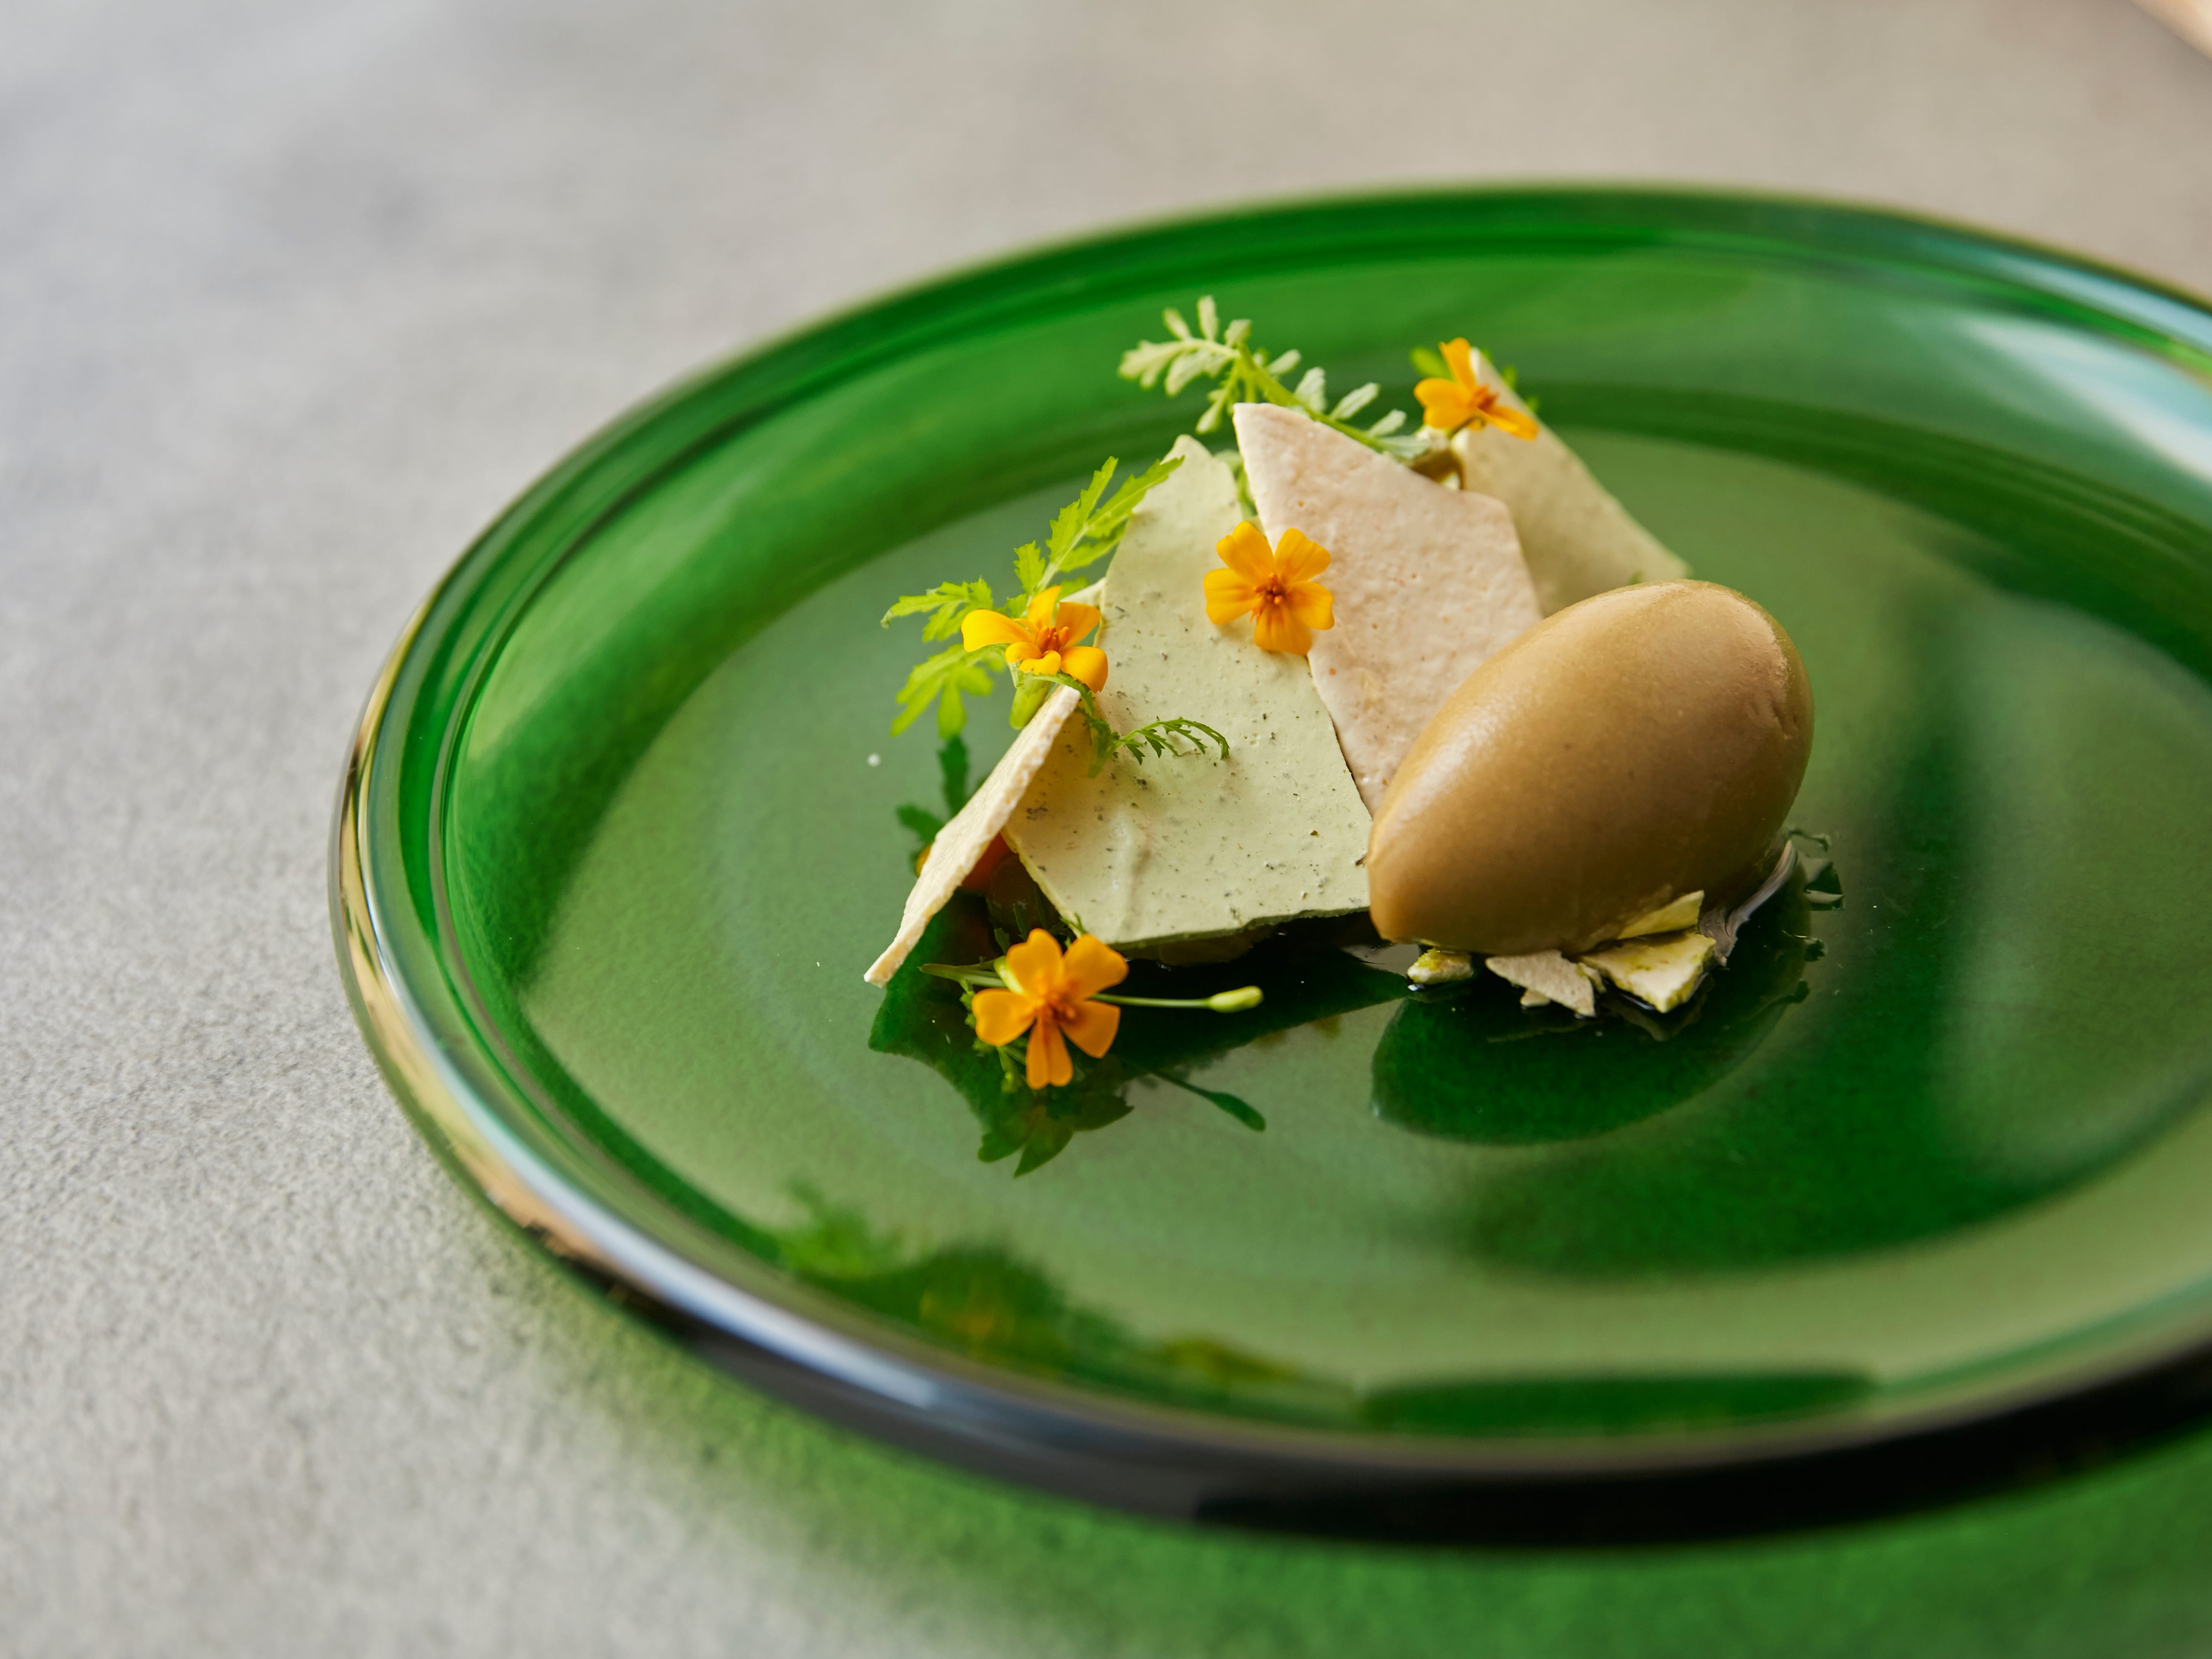 Since opening in 2017, Chapter has won numerous accolades, including being named Helsinki's best new restaurant. Chef Juho Ekegren employs local Finnish and seasonal products.